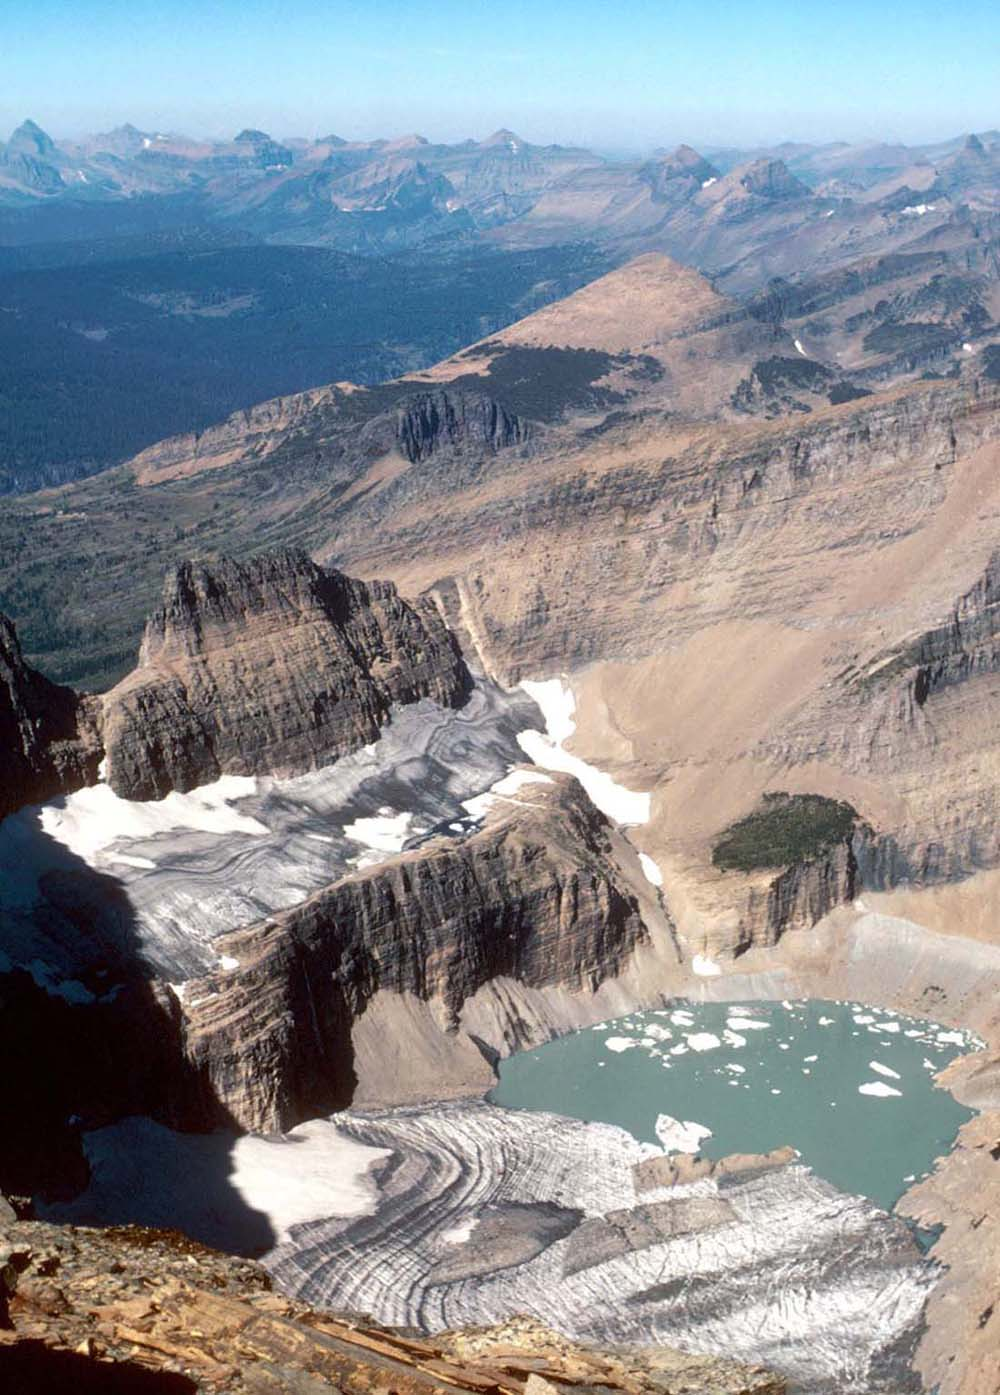 Grinnell Glacier in Glacier National Park (US) in 1981